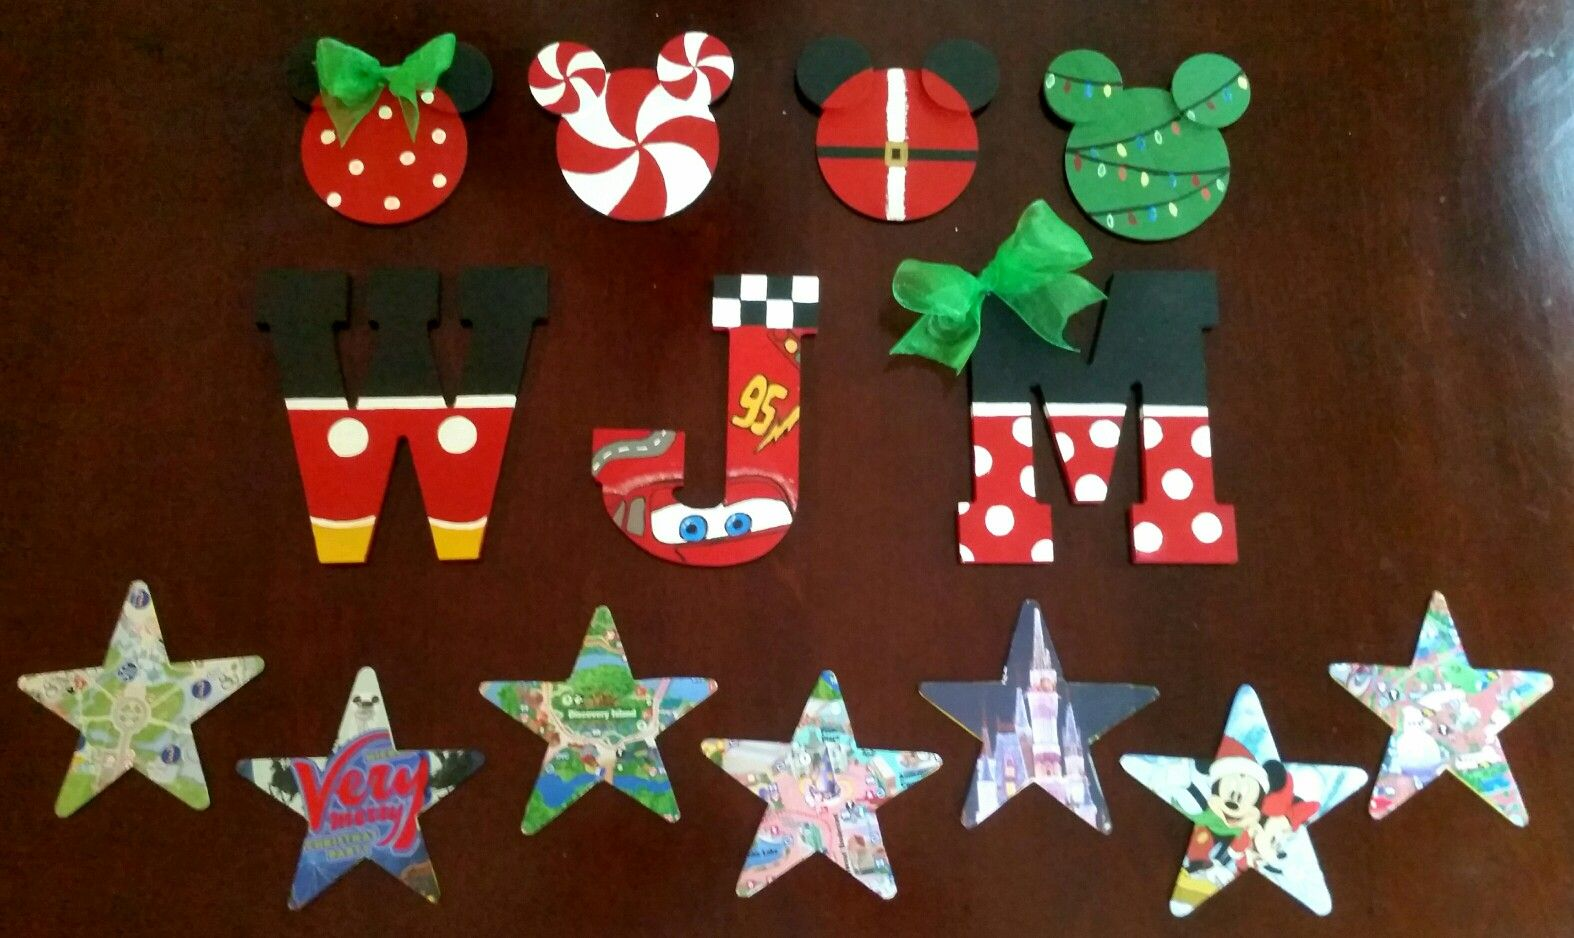 Diy Disney Christmas Ornaments Wooden Letters Stars And Mickeys Hand Painted And Decoupage Park Disney Christmas Ornaments Christmas Crafts Letter Ornaments